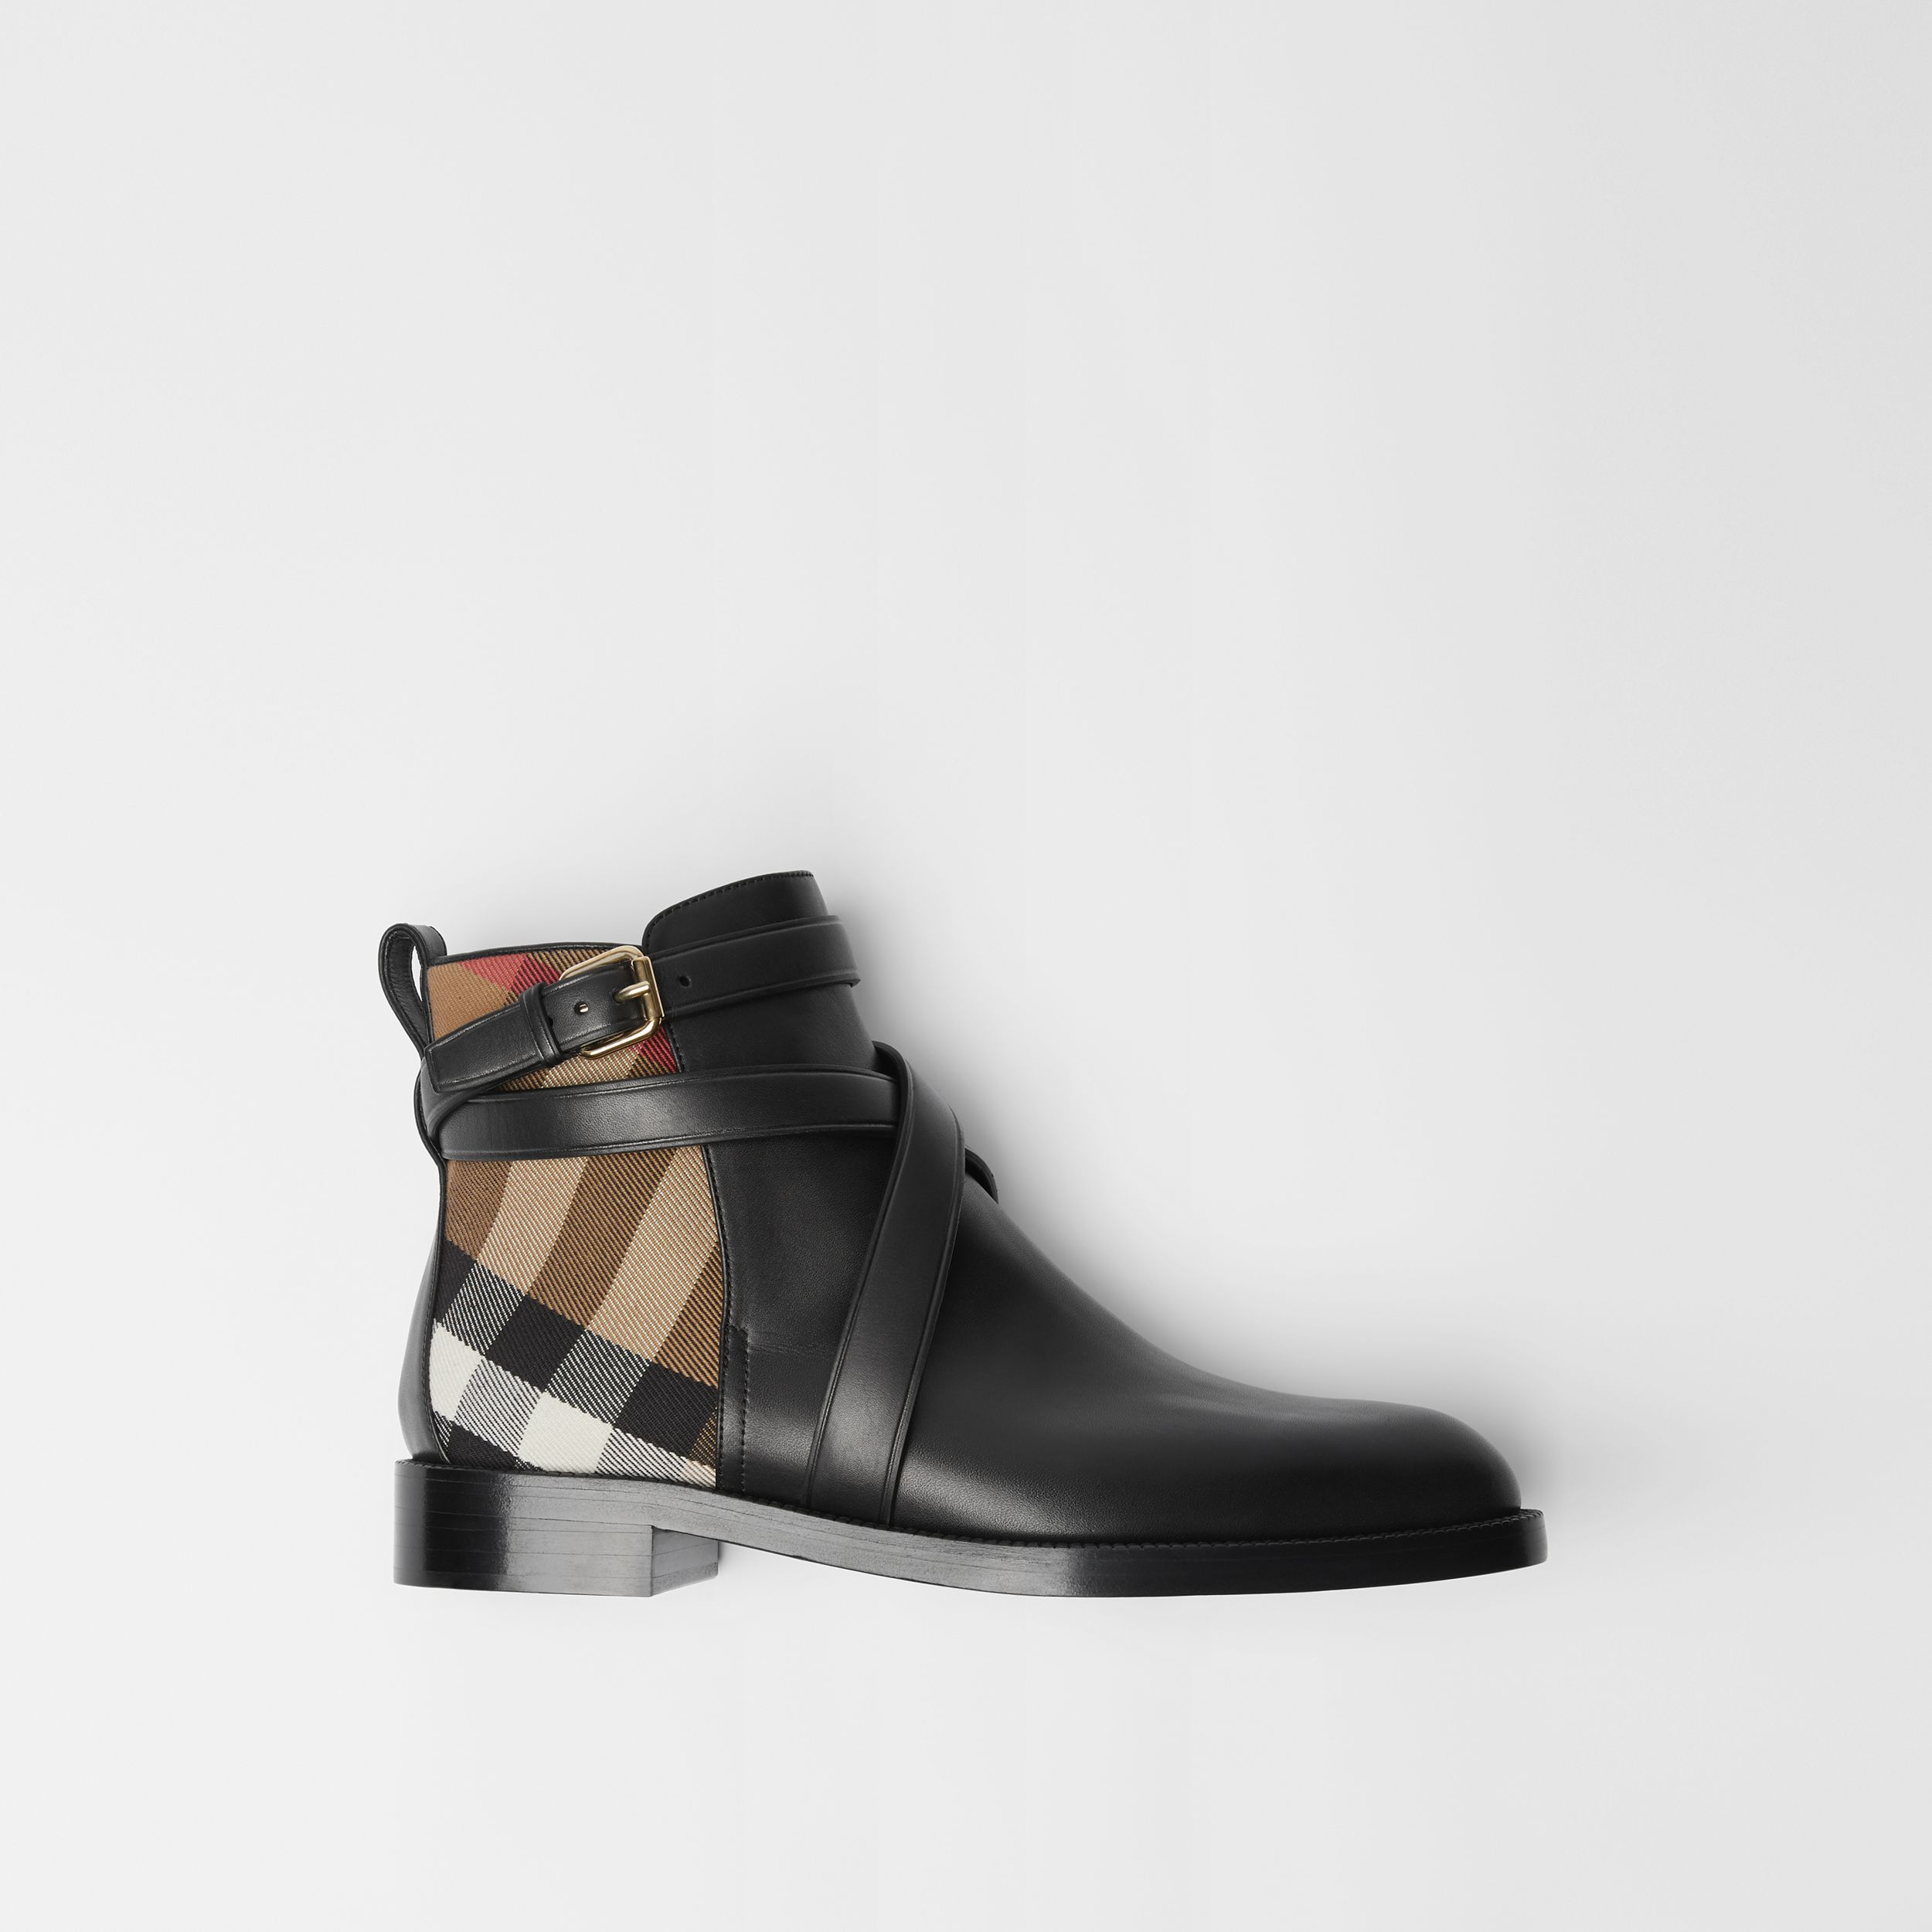 House Check and Leather Ankle Boots in Black - Women | Burberry United Kingdom - 1